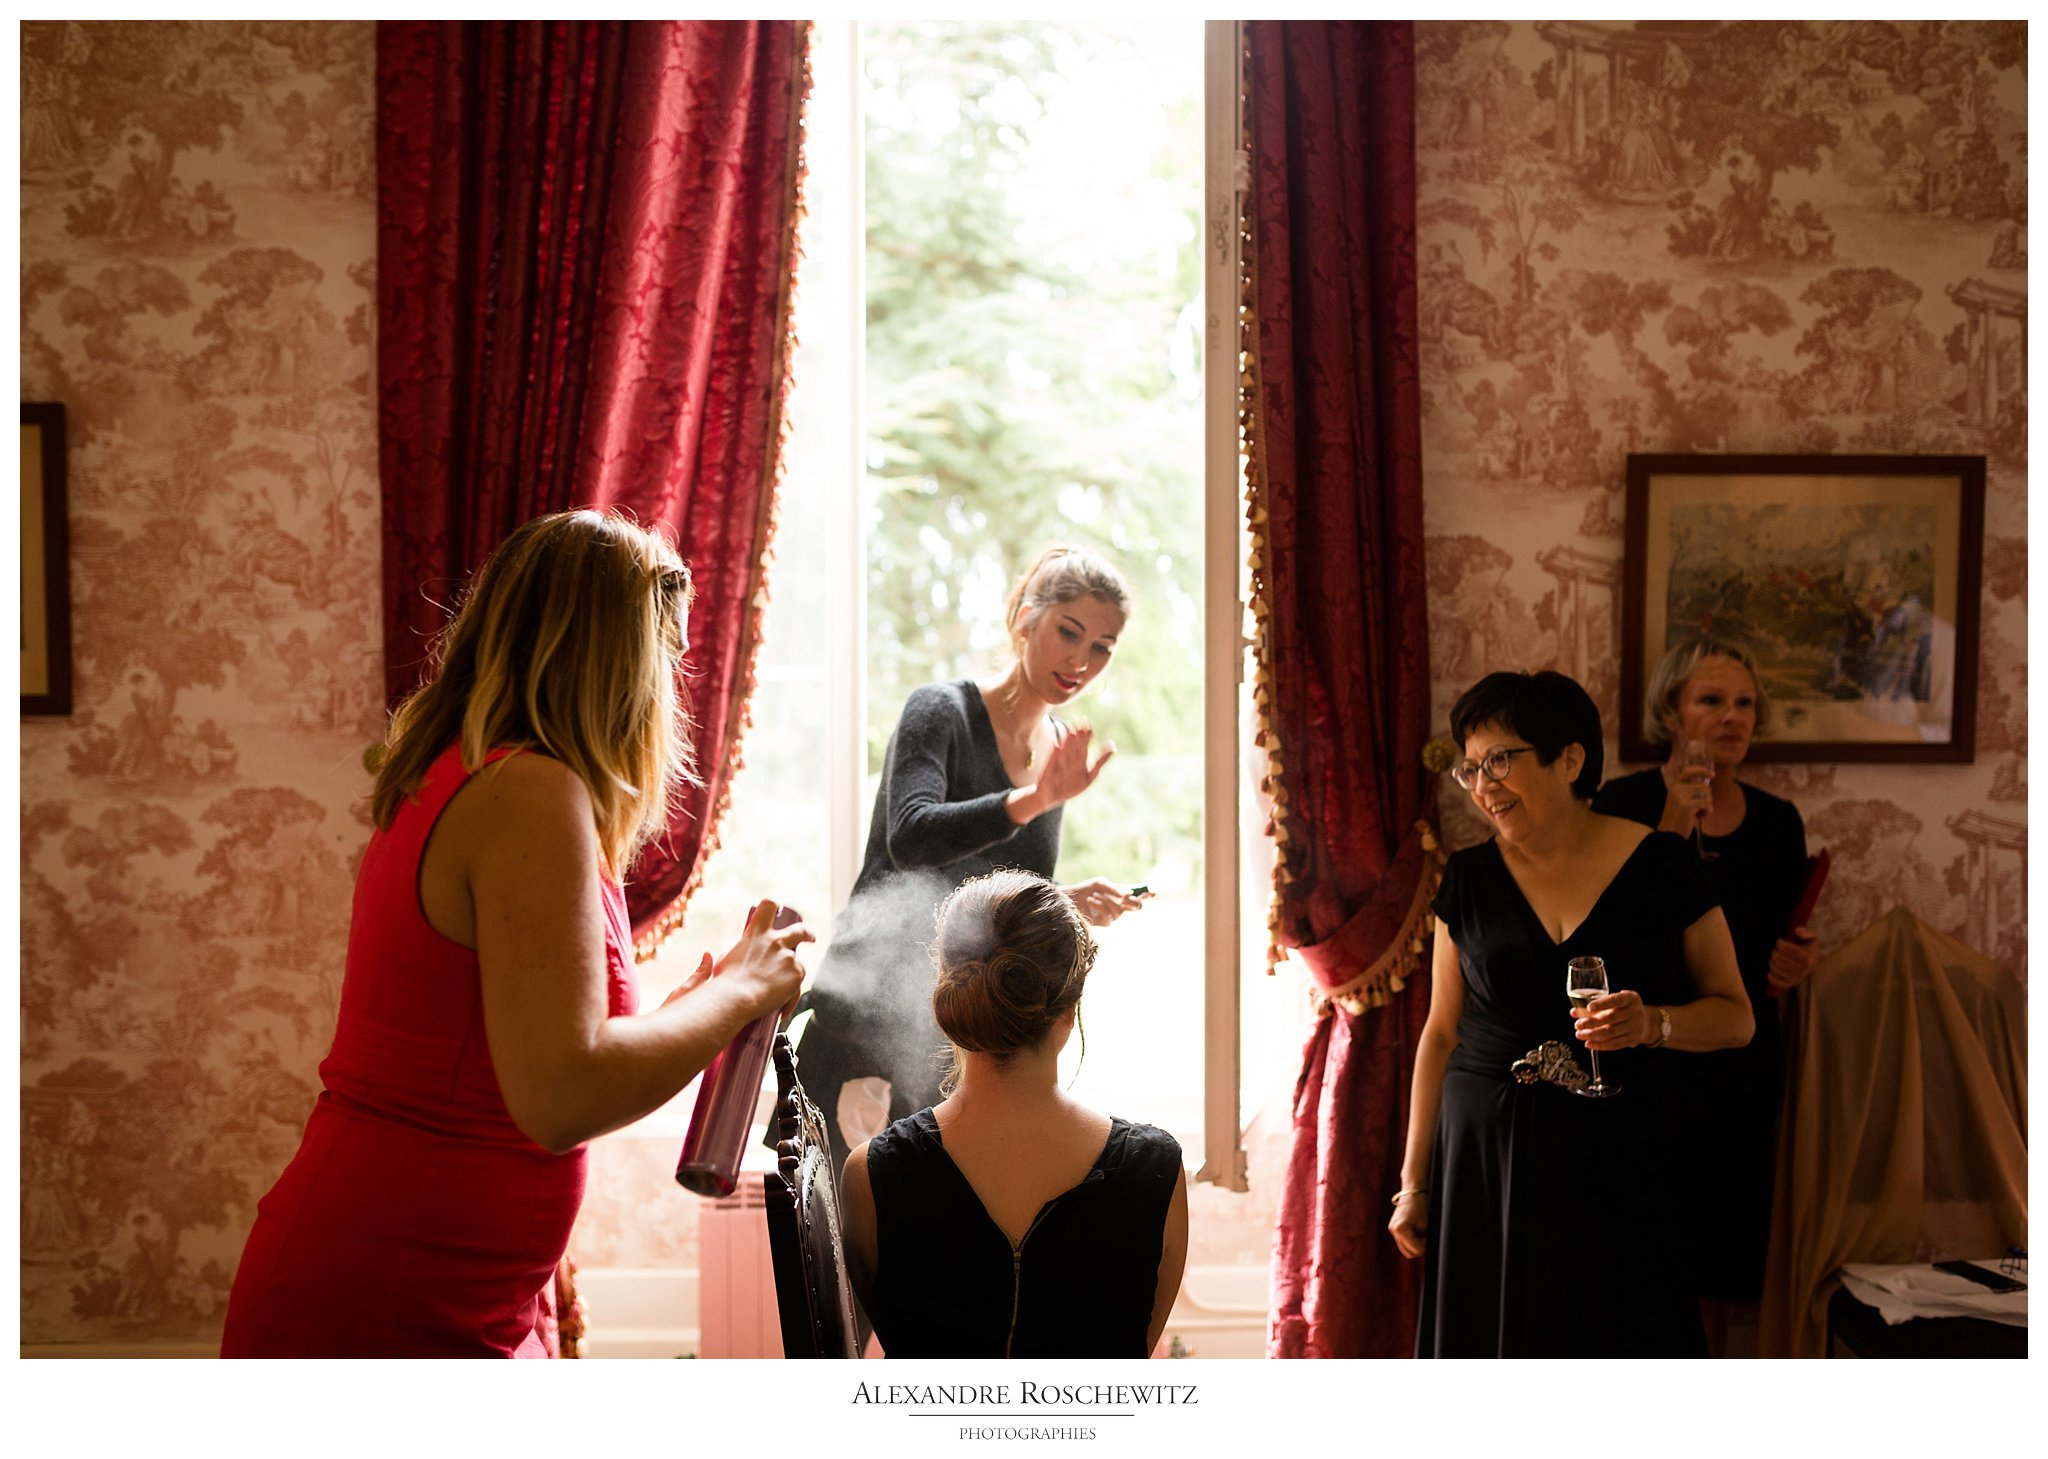 Les photos du mariage franco-américain de Juliette et Jefferson au Château Fombrauge - Saint-Emilion. The photos of the french american wedding of Juliette and Jefferson at Château Fombrauge - Saint-Emilion. Alexandre Roschewitz Photographies.